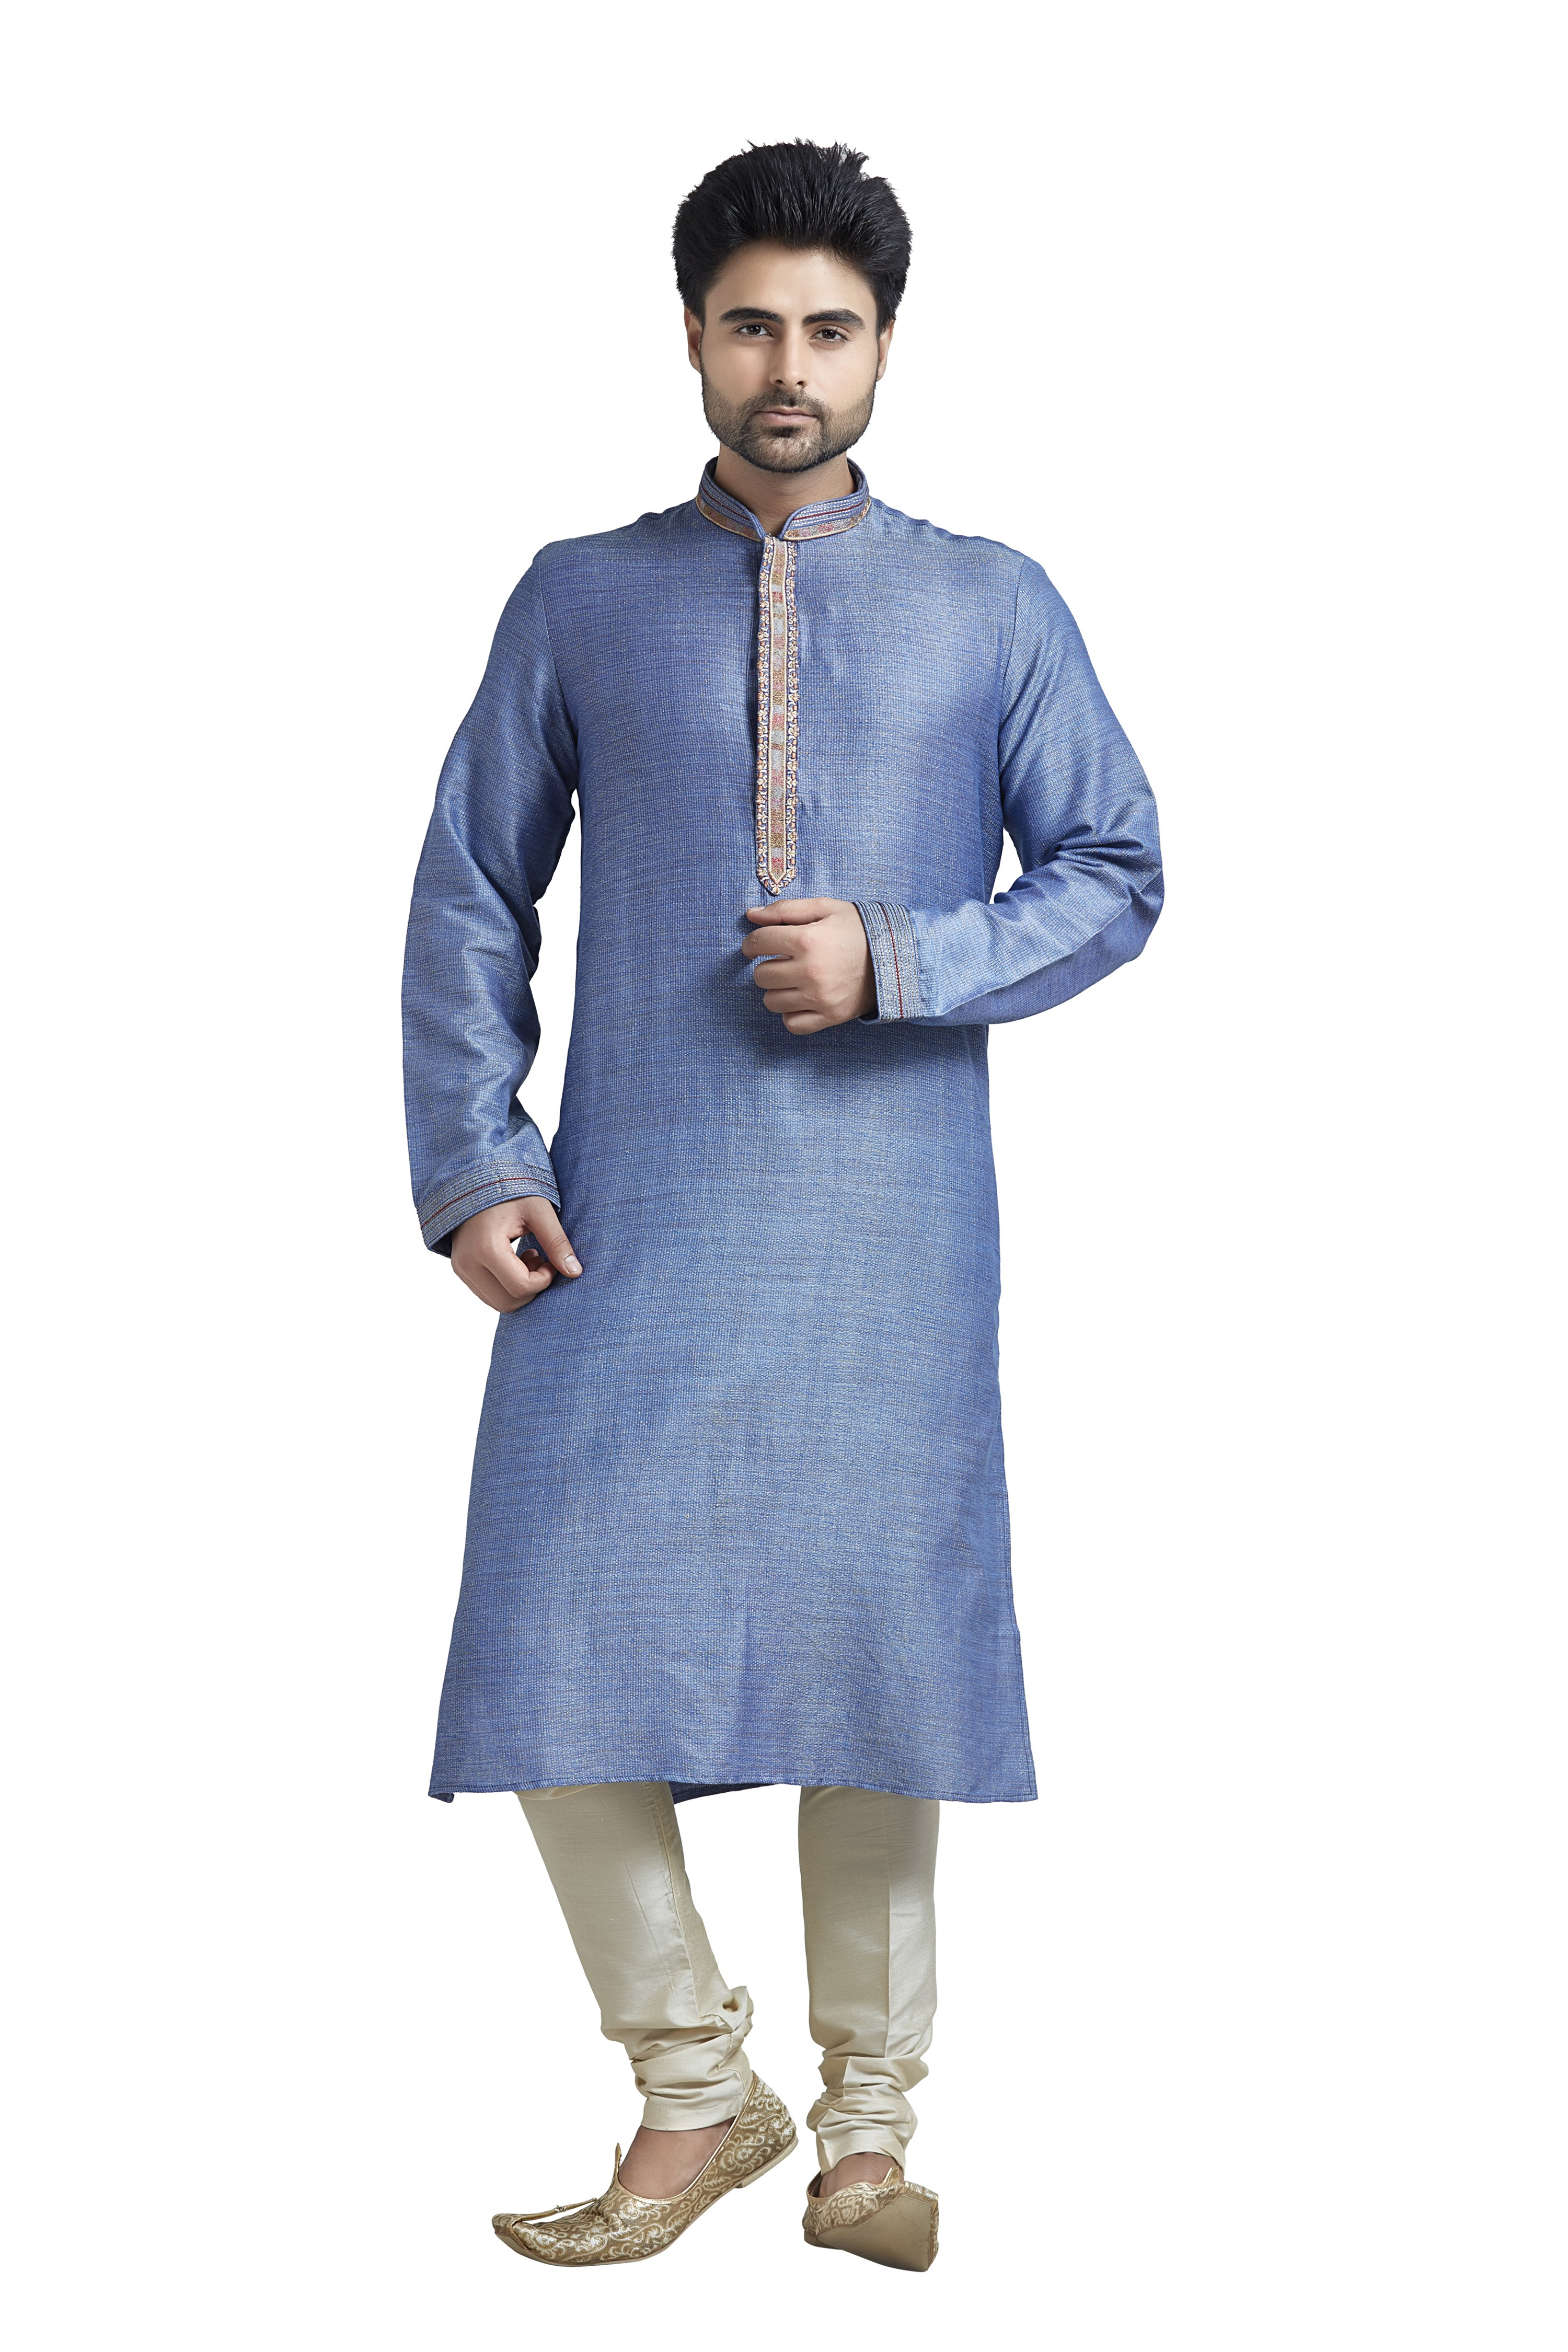 Readymade: Buy Kurta Pajama Online in Blue Colour